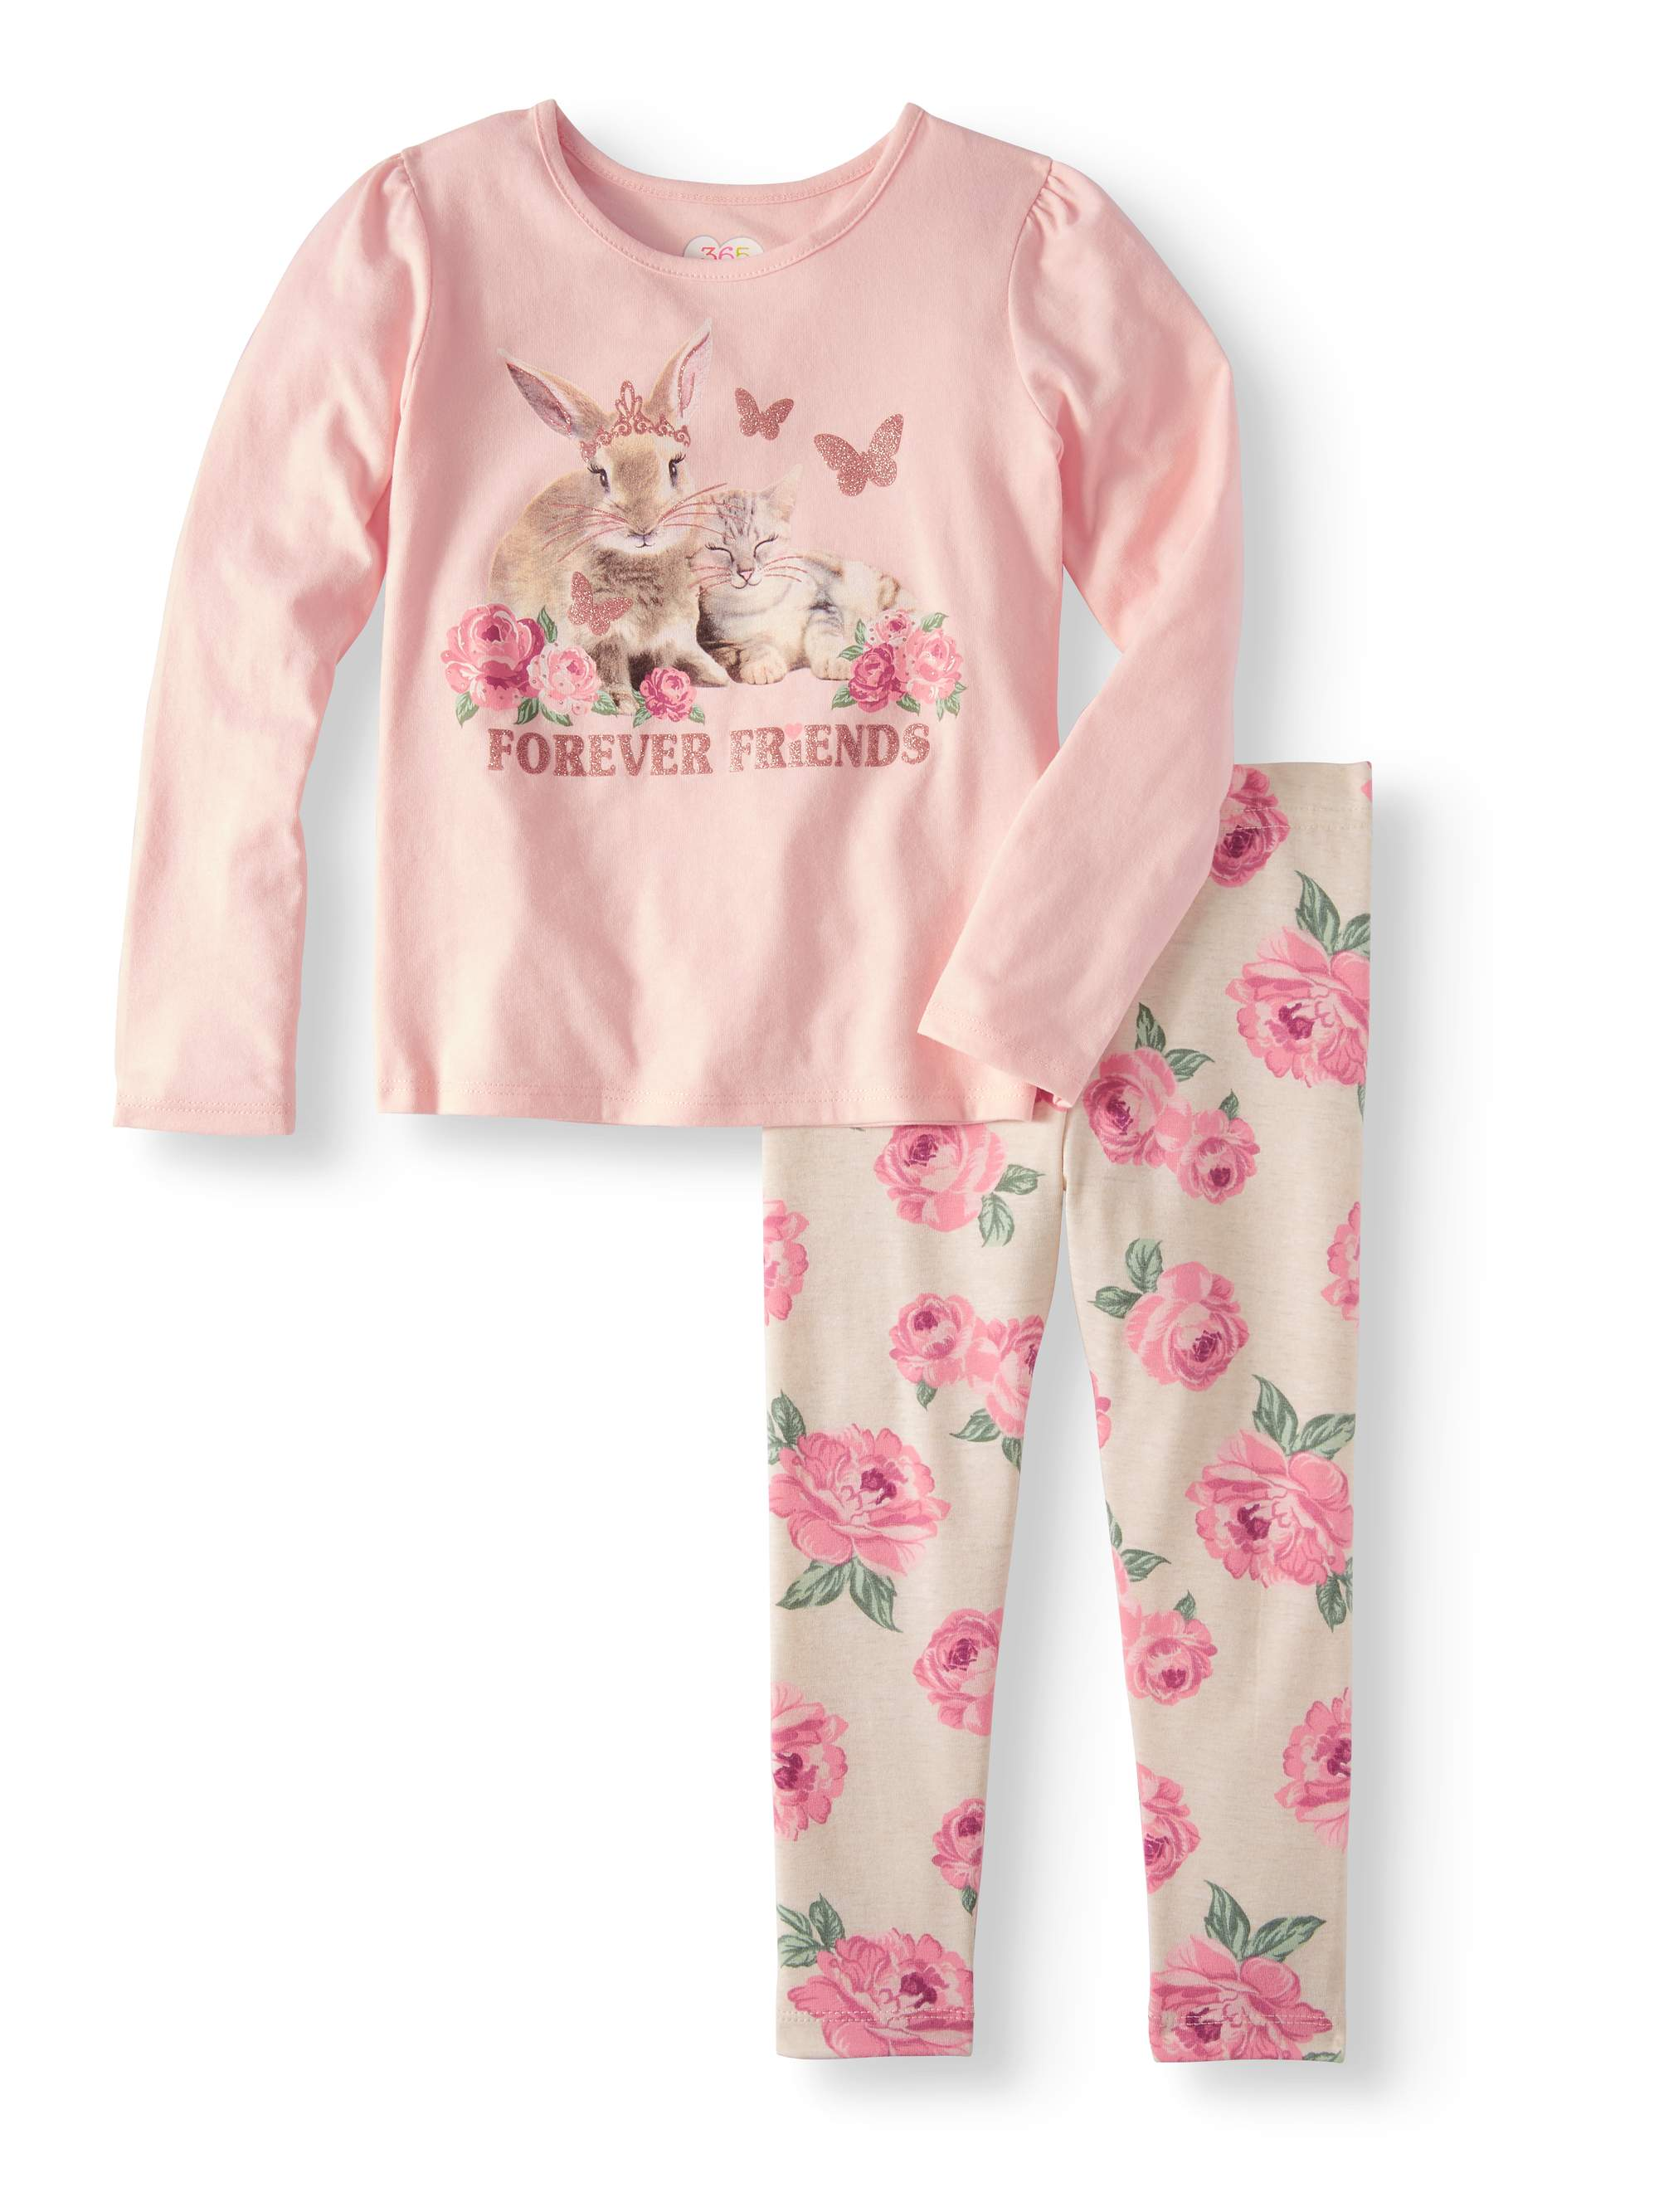 Girls' Long Sleeve Graphic Tee & All Over Print Leggings, 2pc Outfit Set